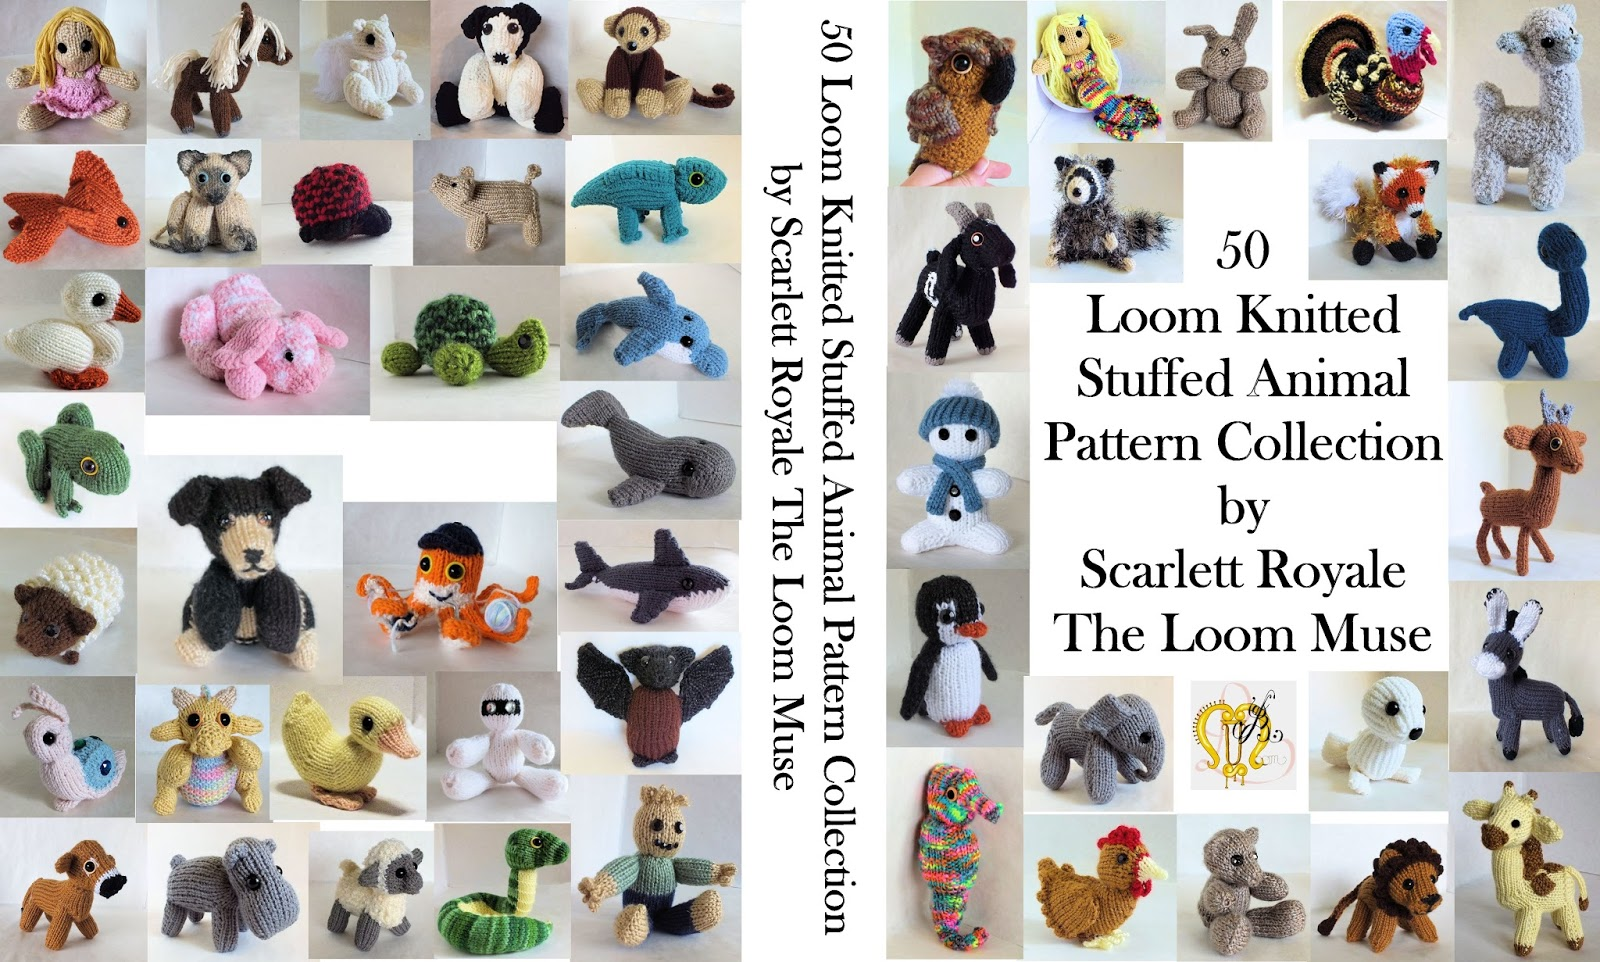 The Loom Muse 50 Loom Knitted Stuffed Animal Pattern